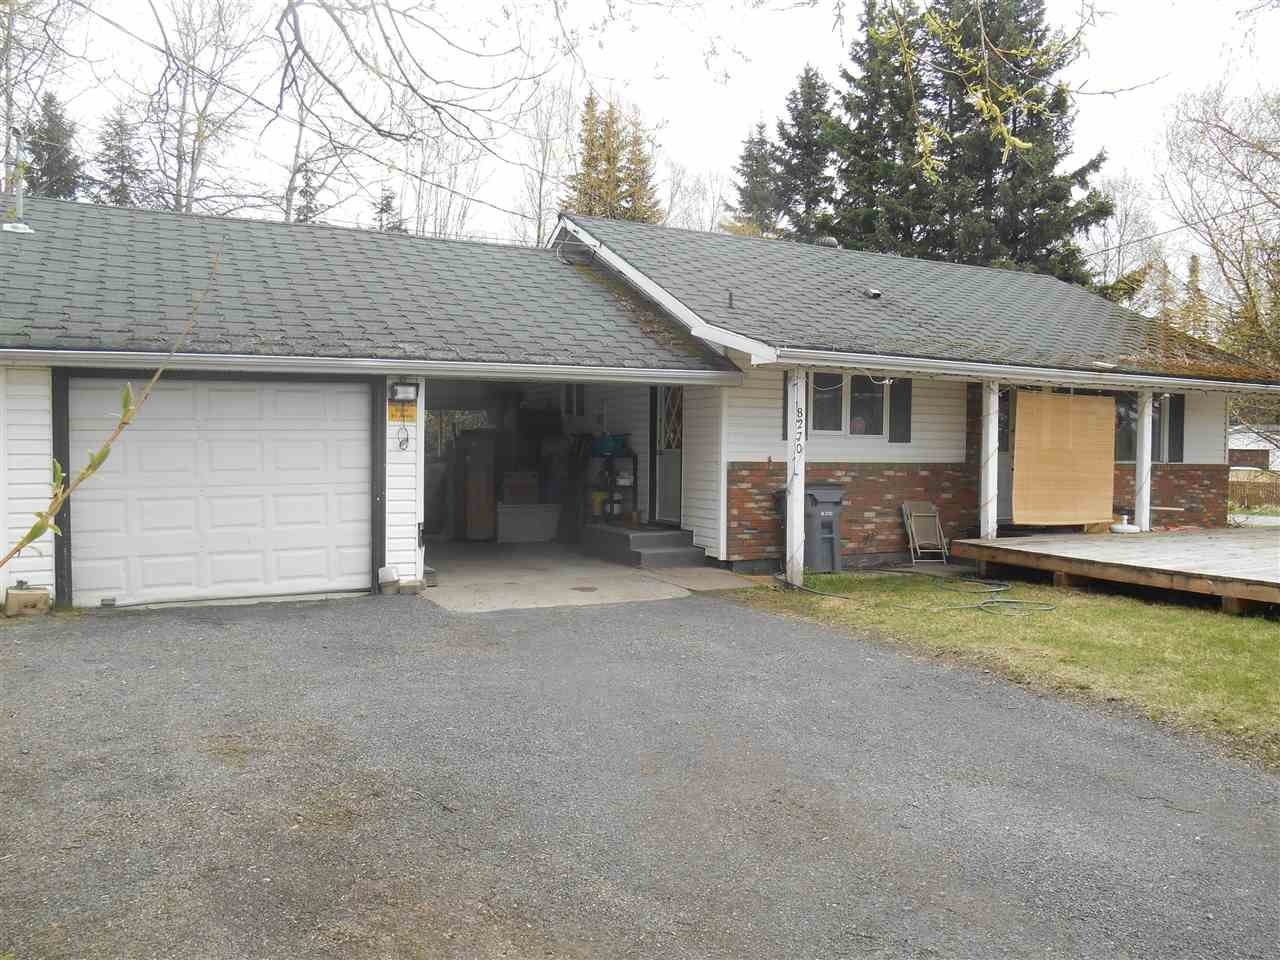 Main Photo: 8270 E HART Highway in Prince George: Hart Highway House for sale (PG City North (Zone 73))  : MLS®# R2168861